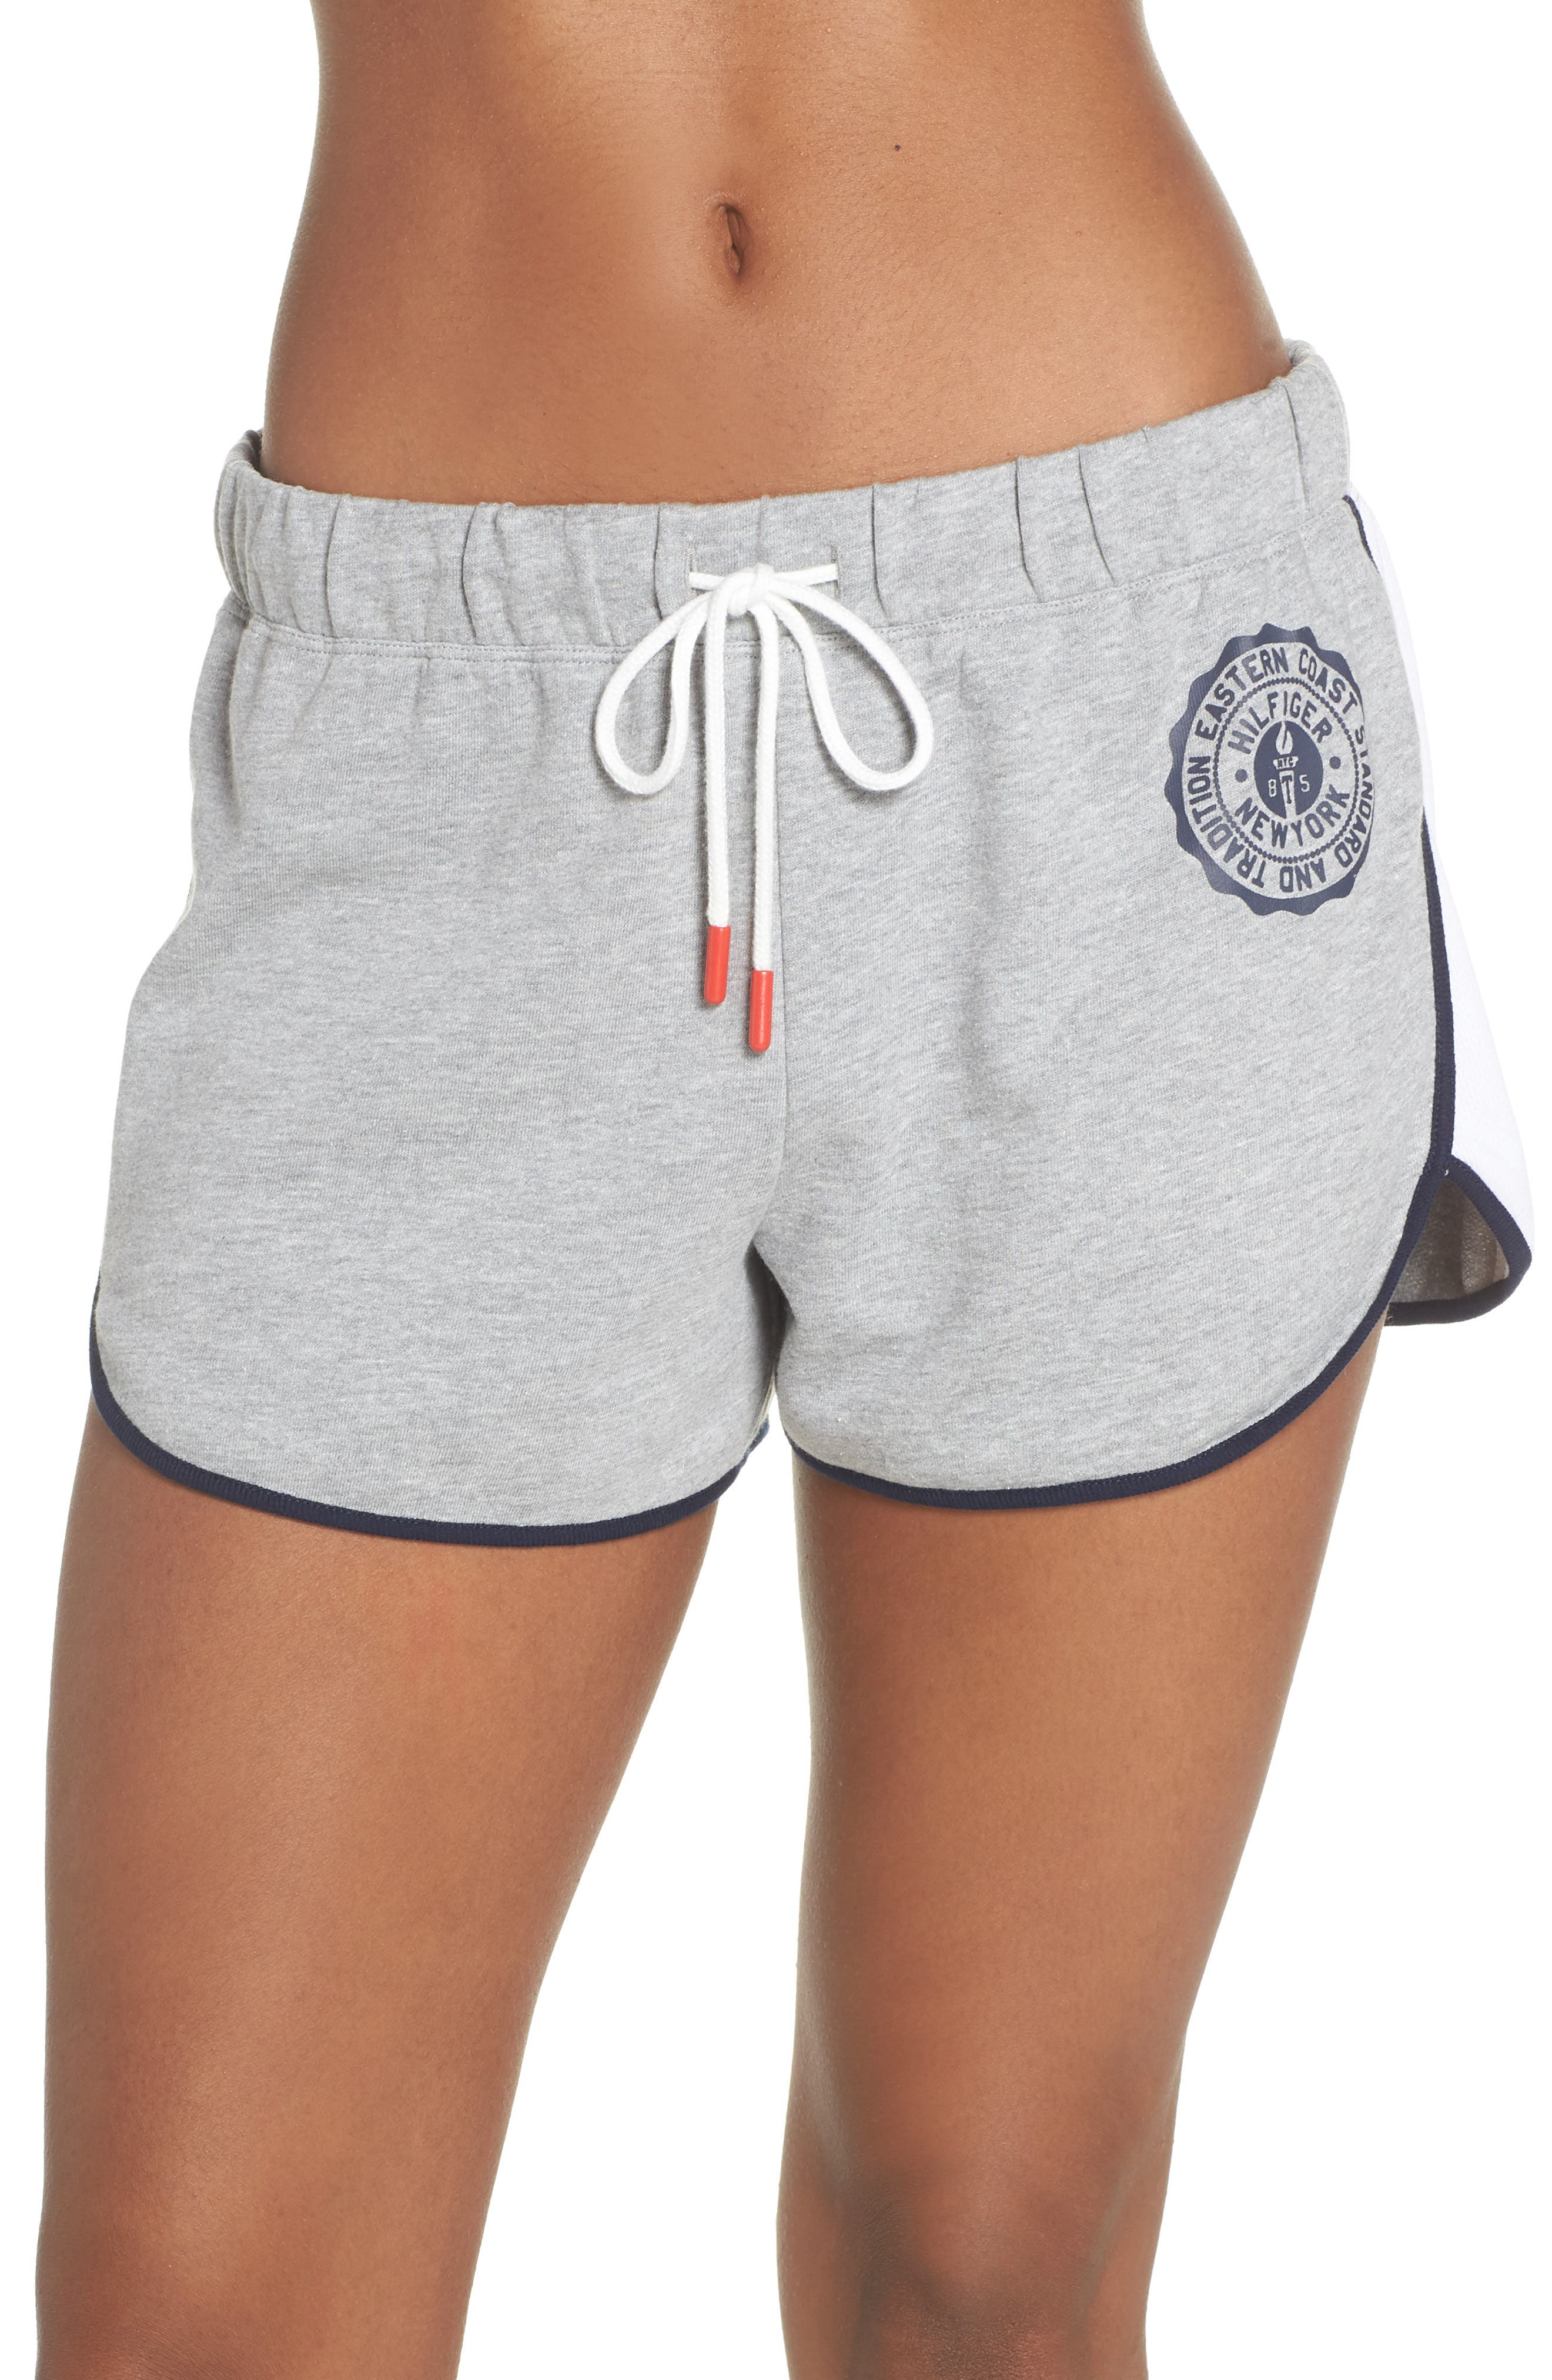 Lounge Shorts,                             Main thumbnail 1, color,                             Heather Gray